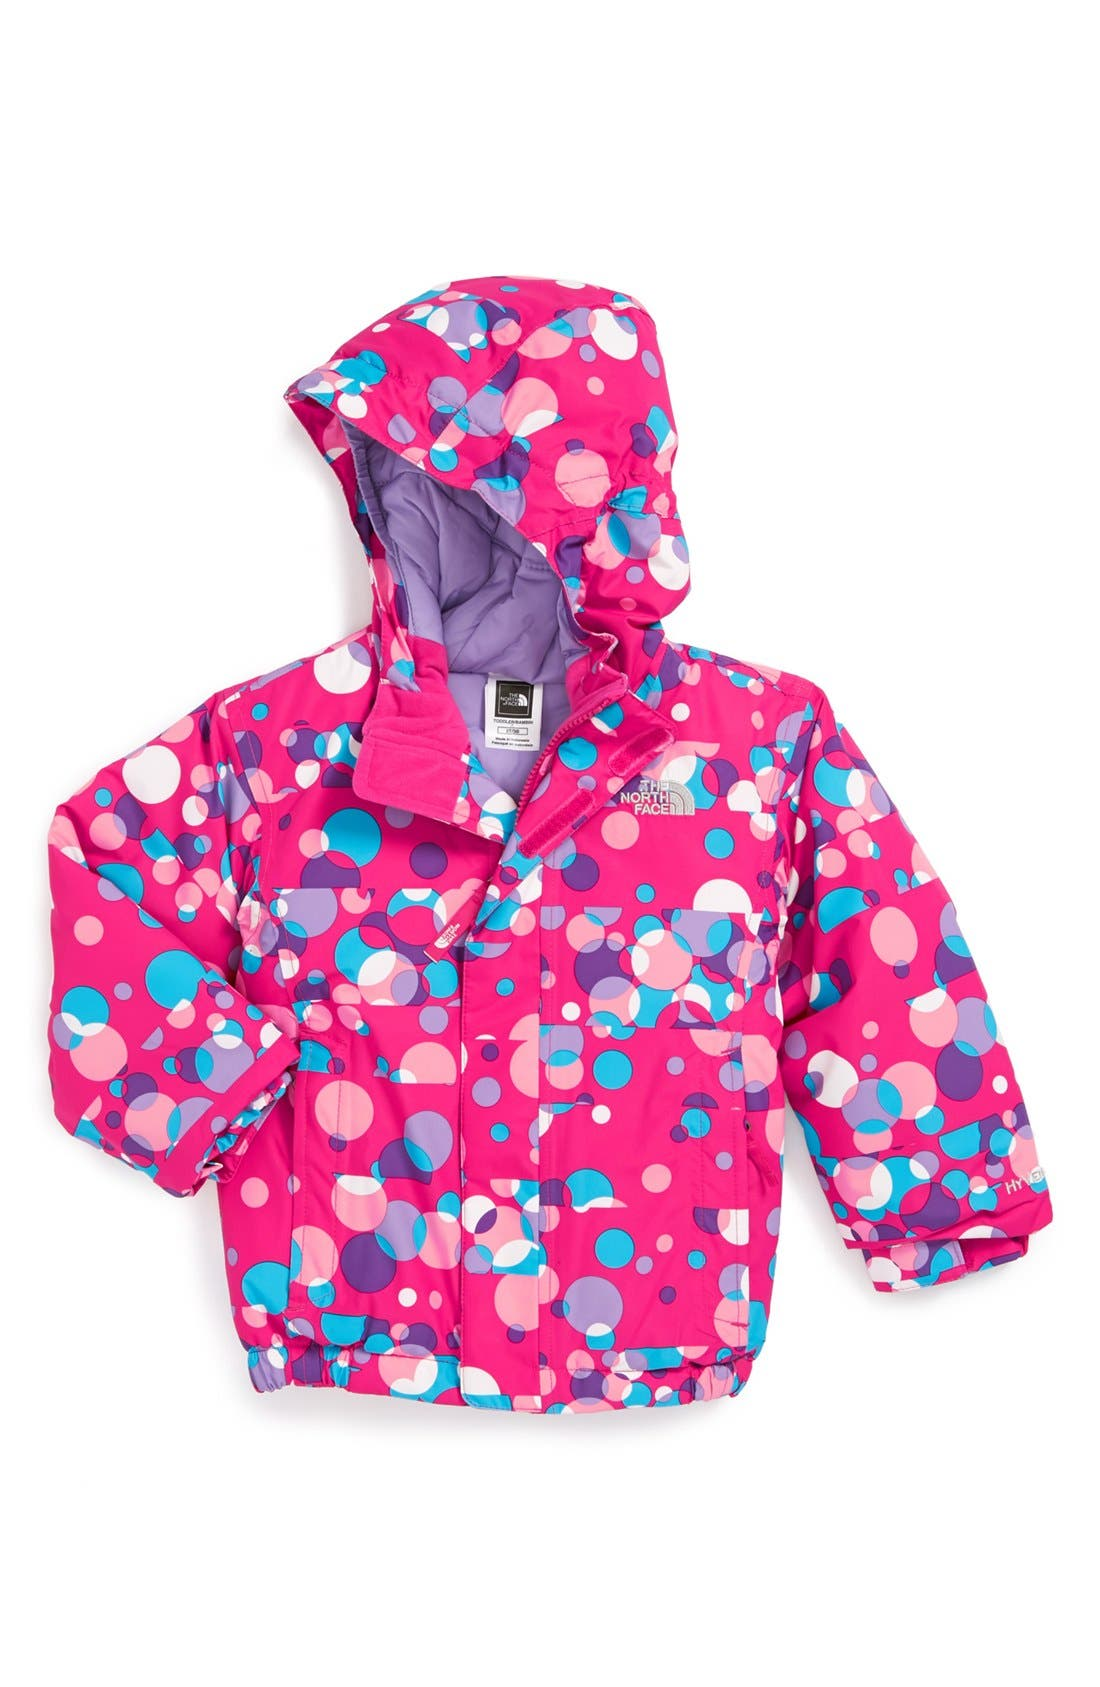 Alternate Image 1 Selected - The North Face 'Chimmy' Insulated Jacket (Toddler Girls)